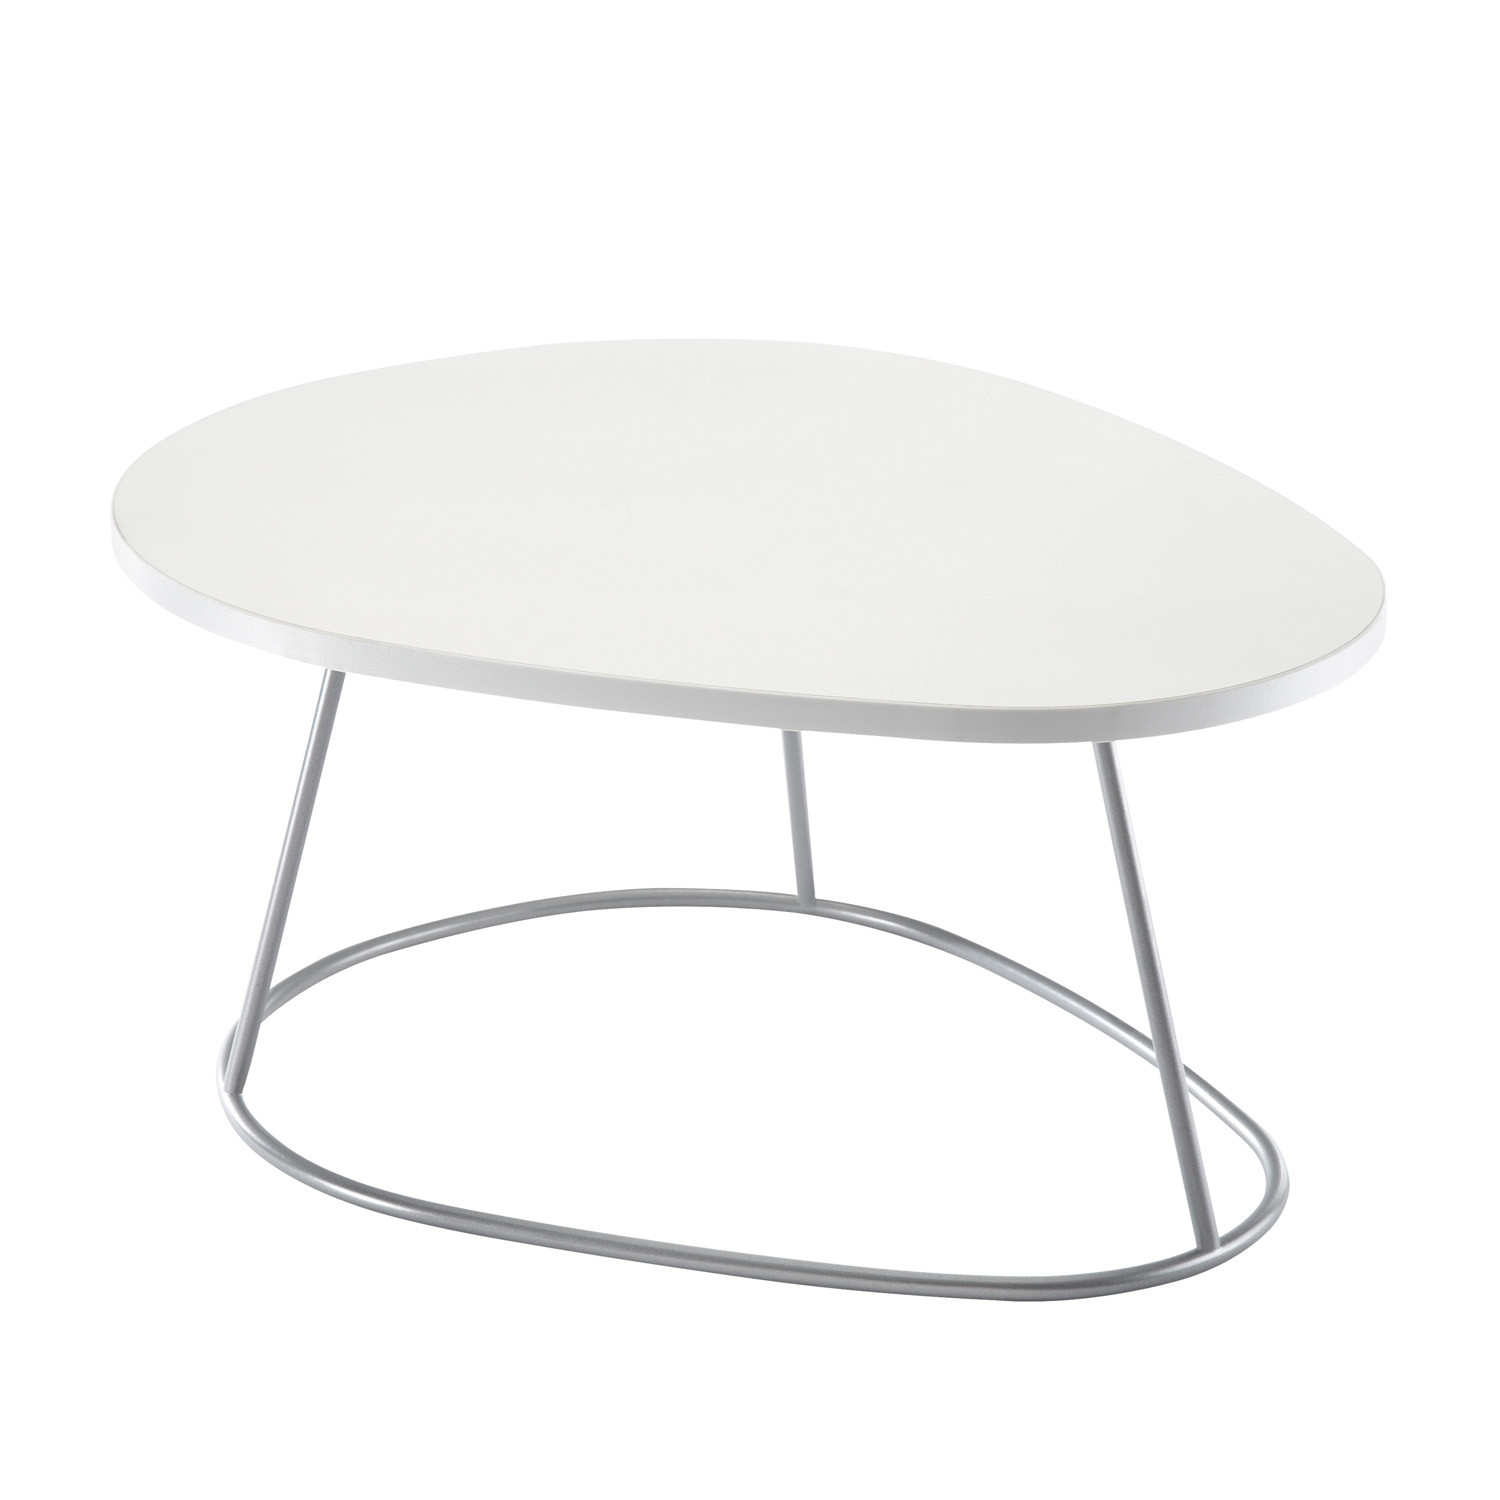 Connection Bubble Table by David Fox Design